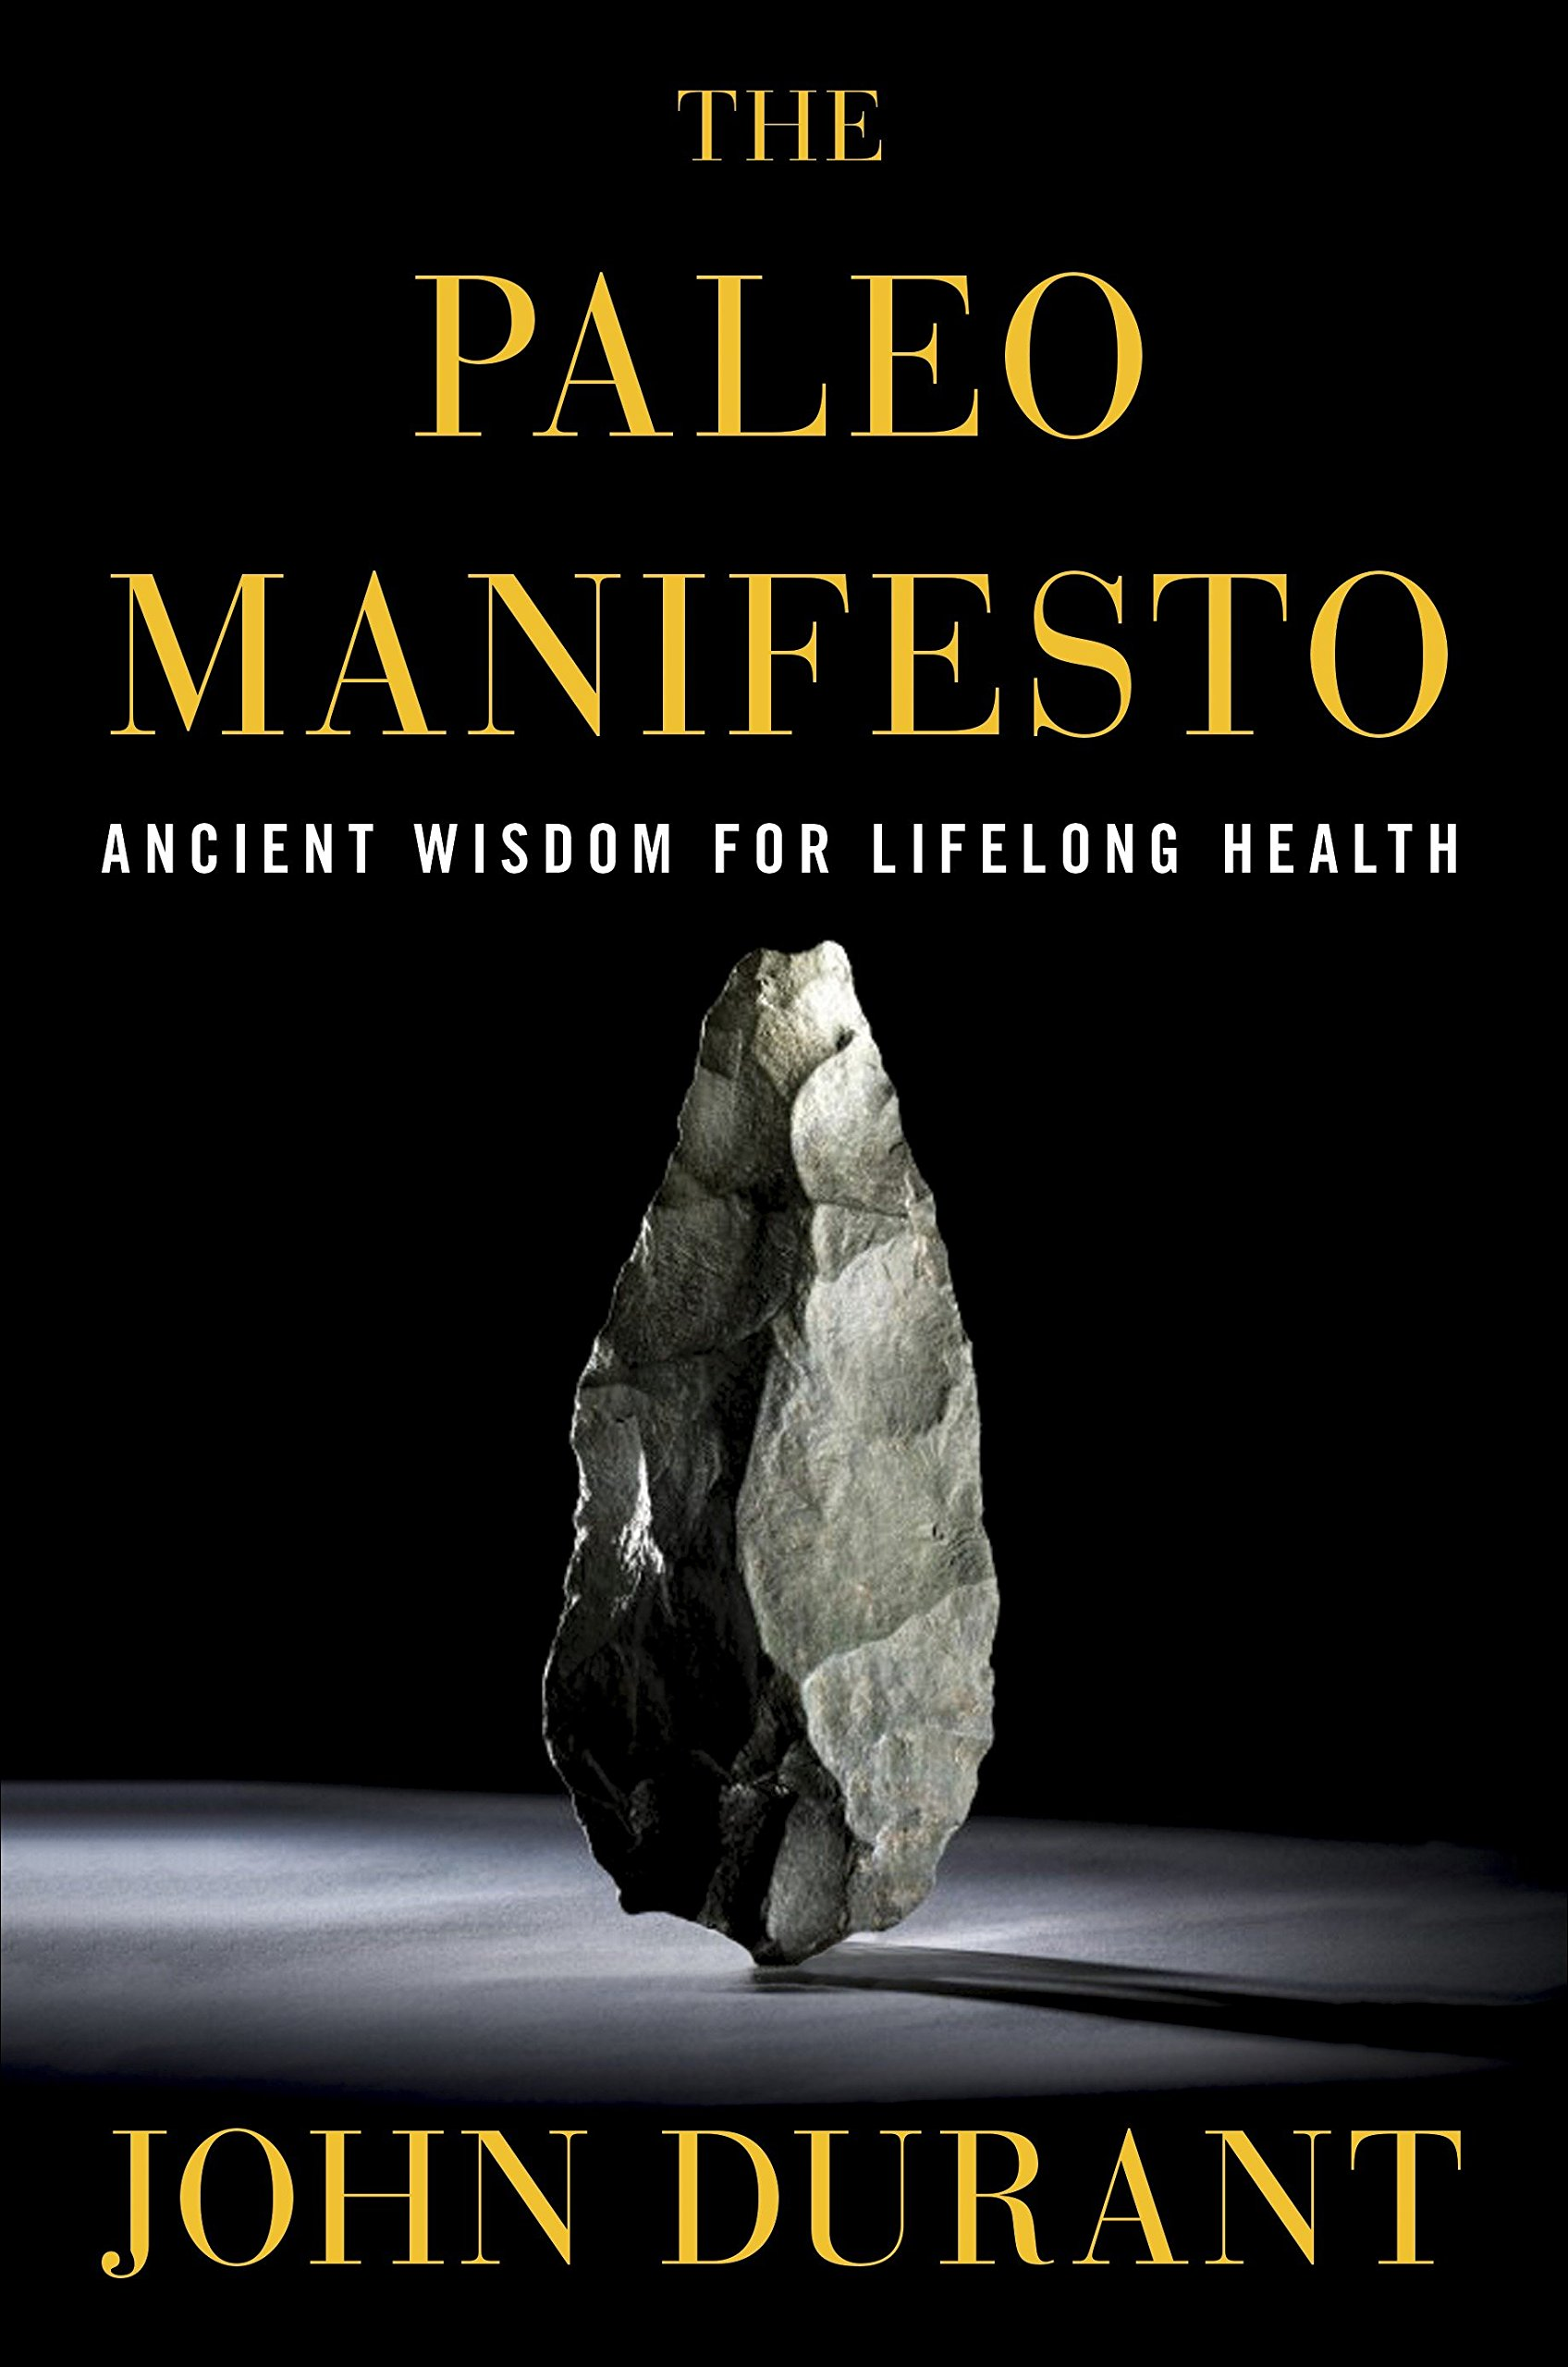 62194cfdf The Paleo Manifesto: Ancient Wisdom for Lifelong Health (Inglês) Capa Comum  – 19 mai 2014